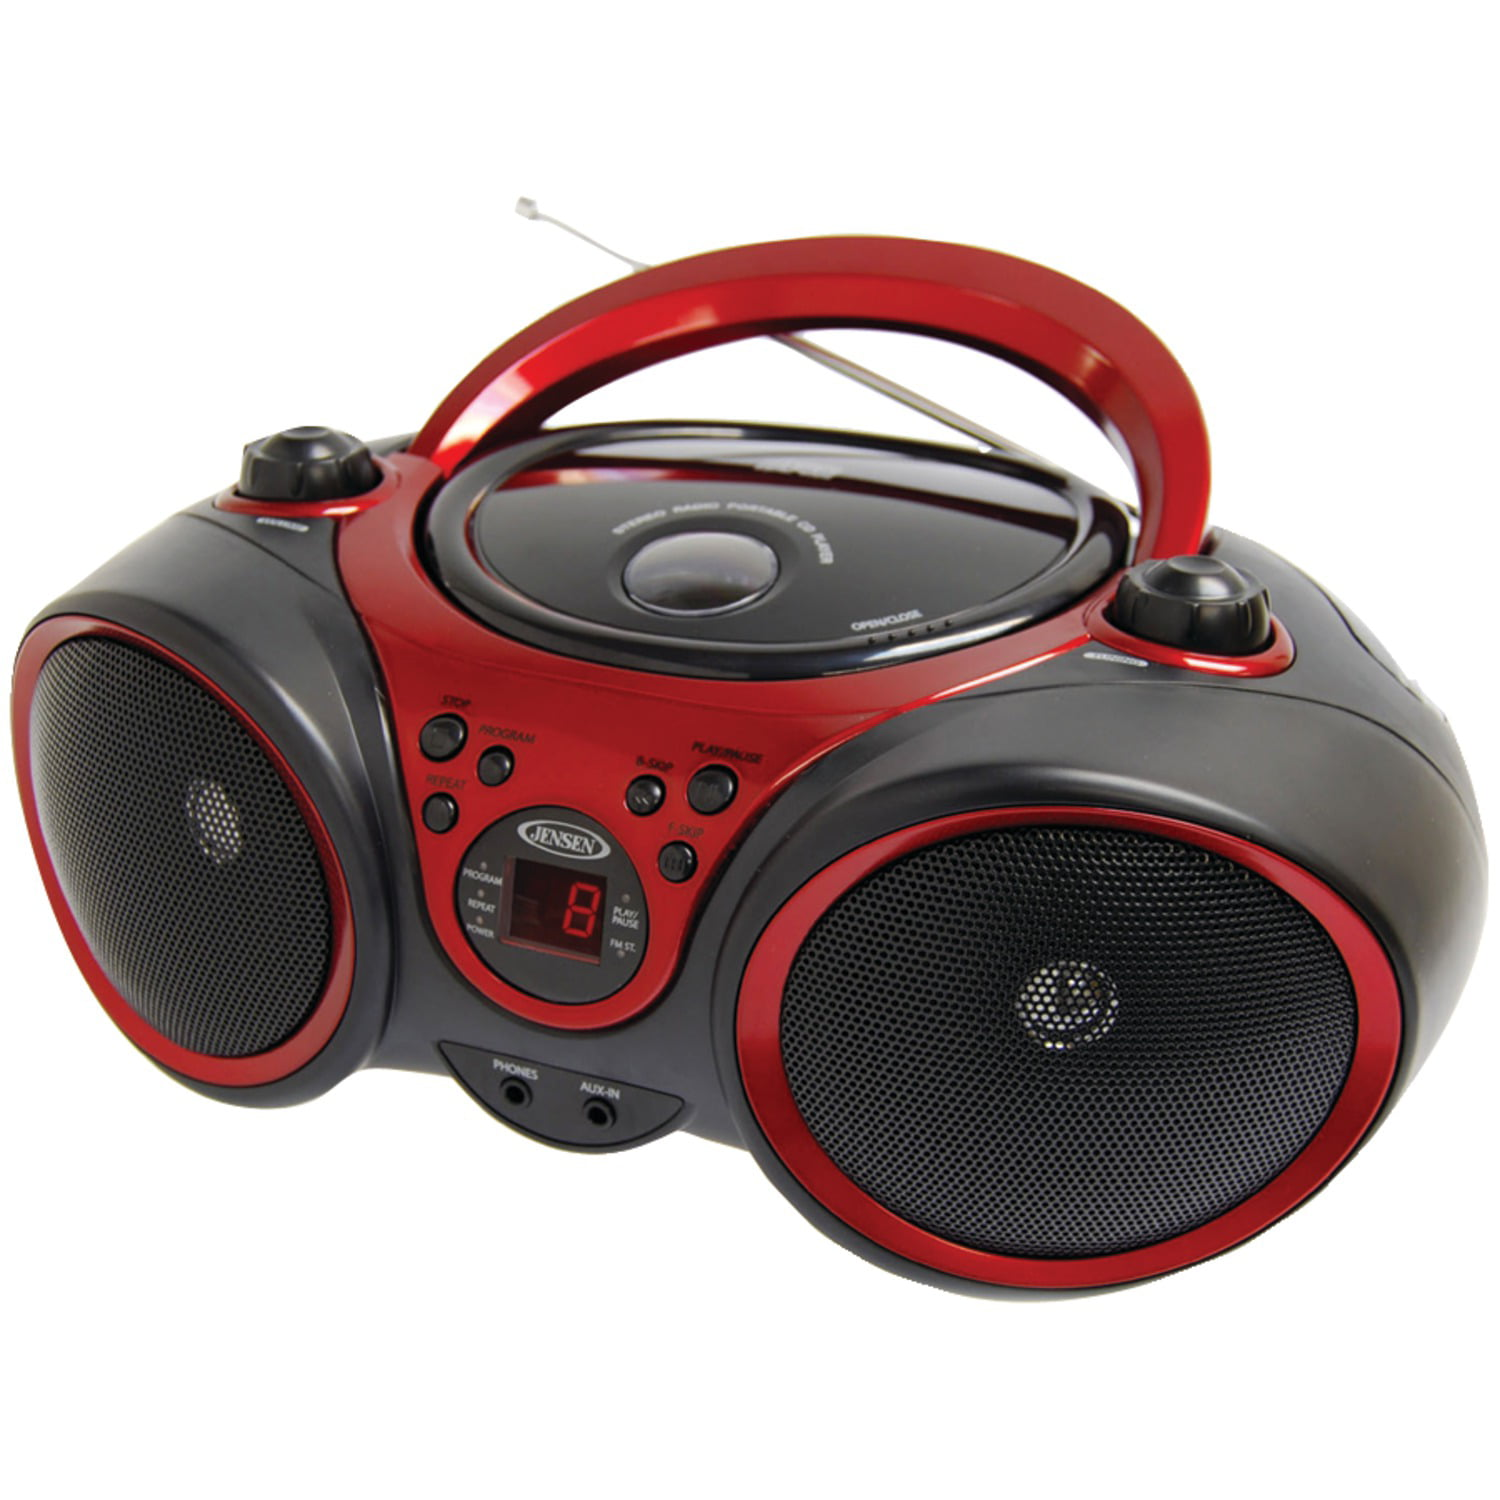 JENSEN CD-490 Portable Stereo CD Player with AM FM Stereo Radio by Jensen